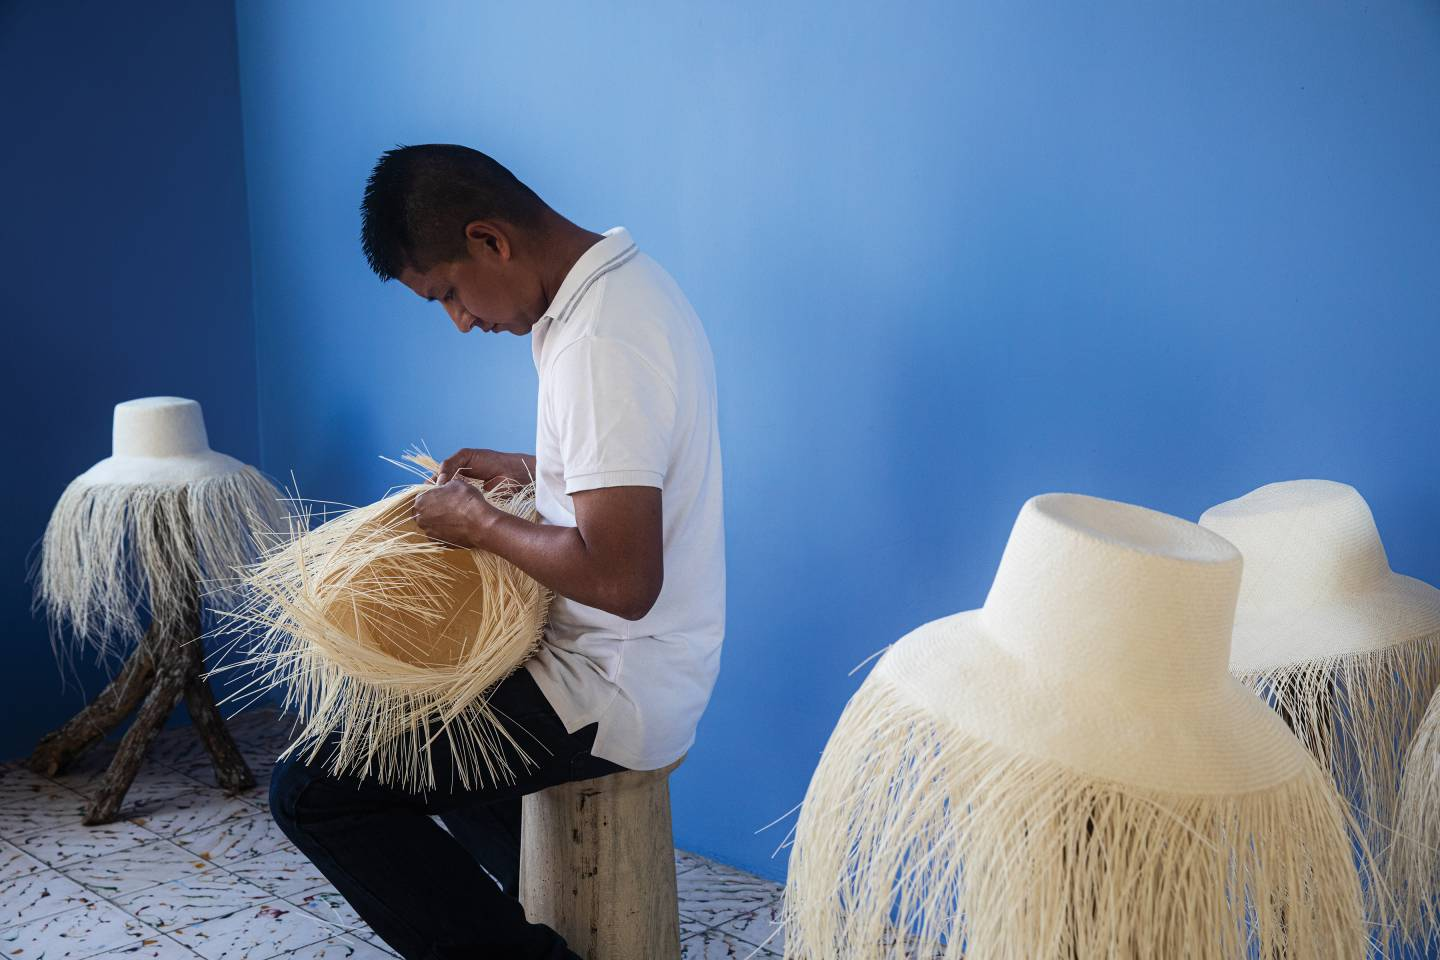 An artisan weaves a Panama hat in a workshop